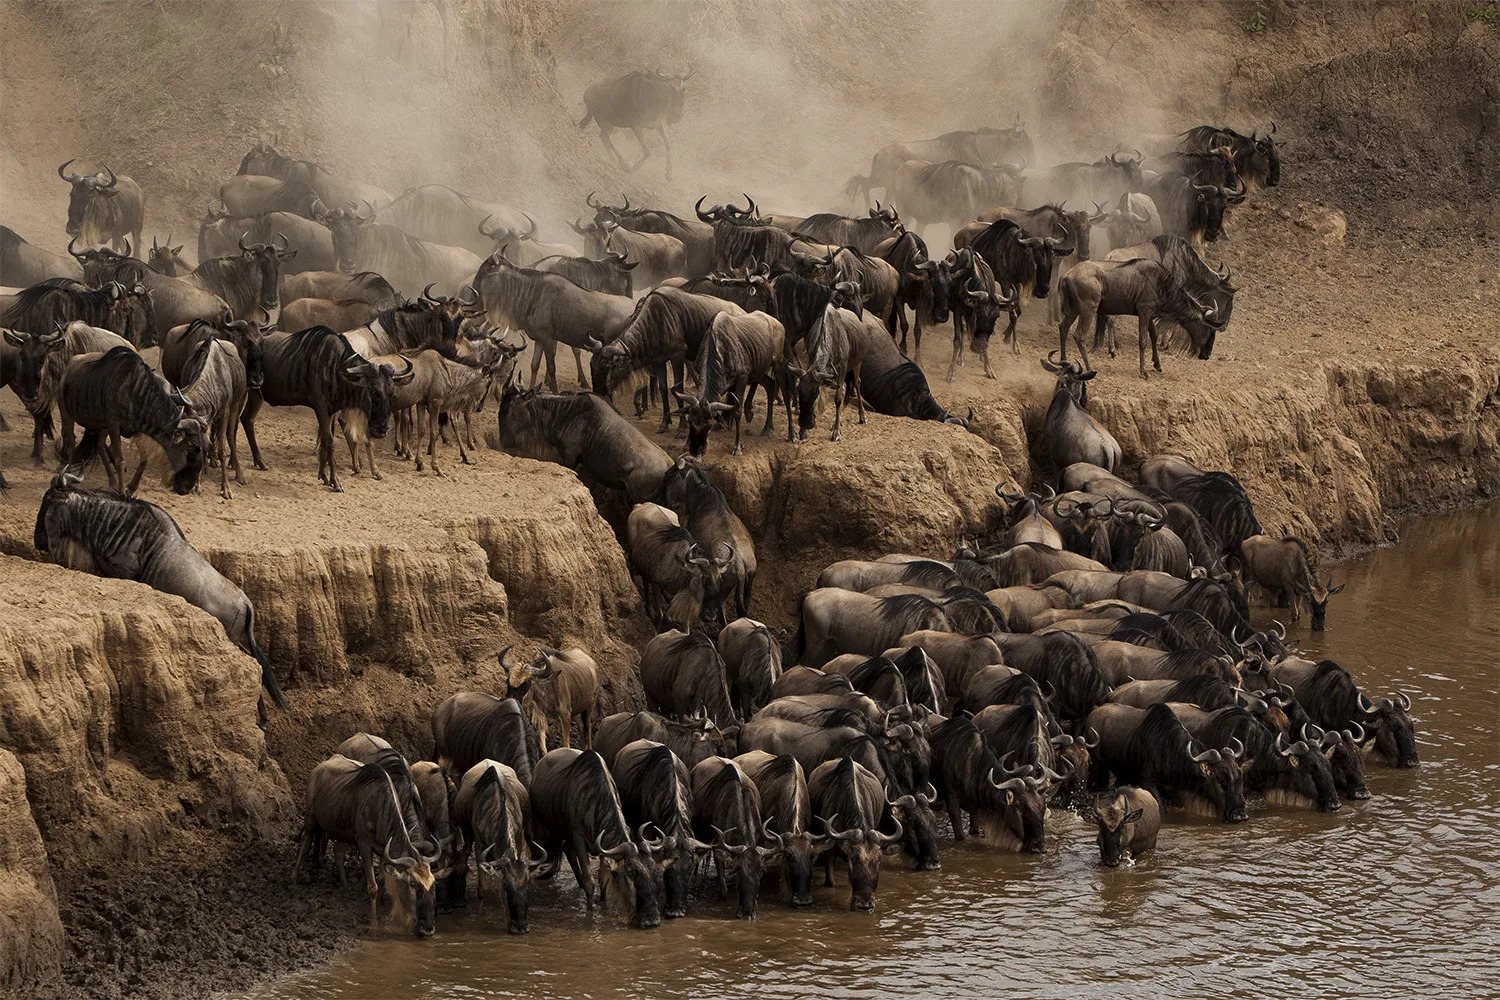 Wildebeest migration drinking and mass